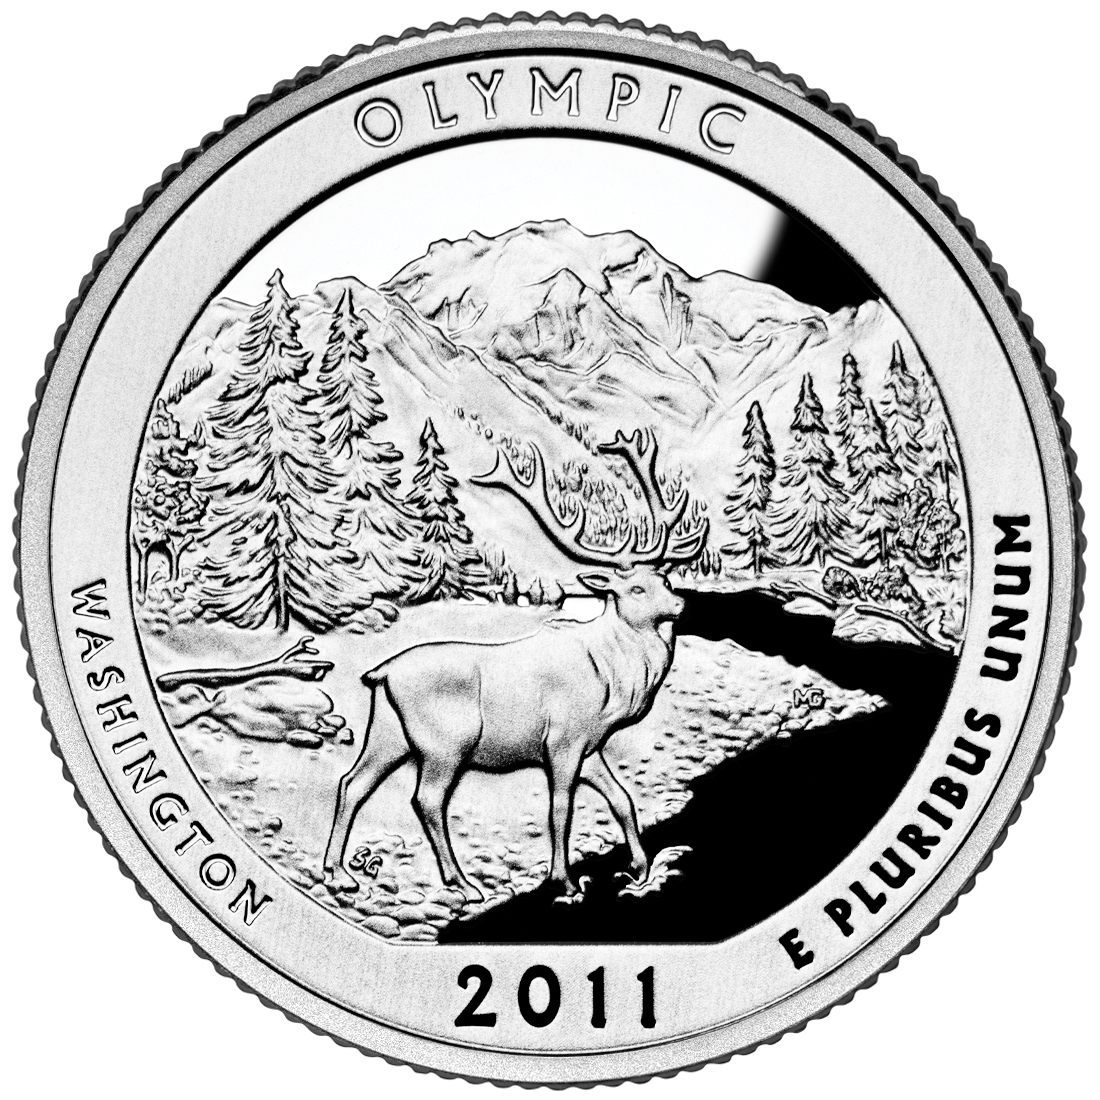 2011 America The Beautiful Quarters Coin Olympic Washington Proof Reverse